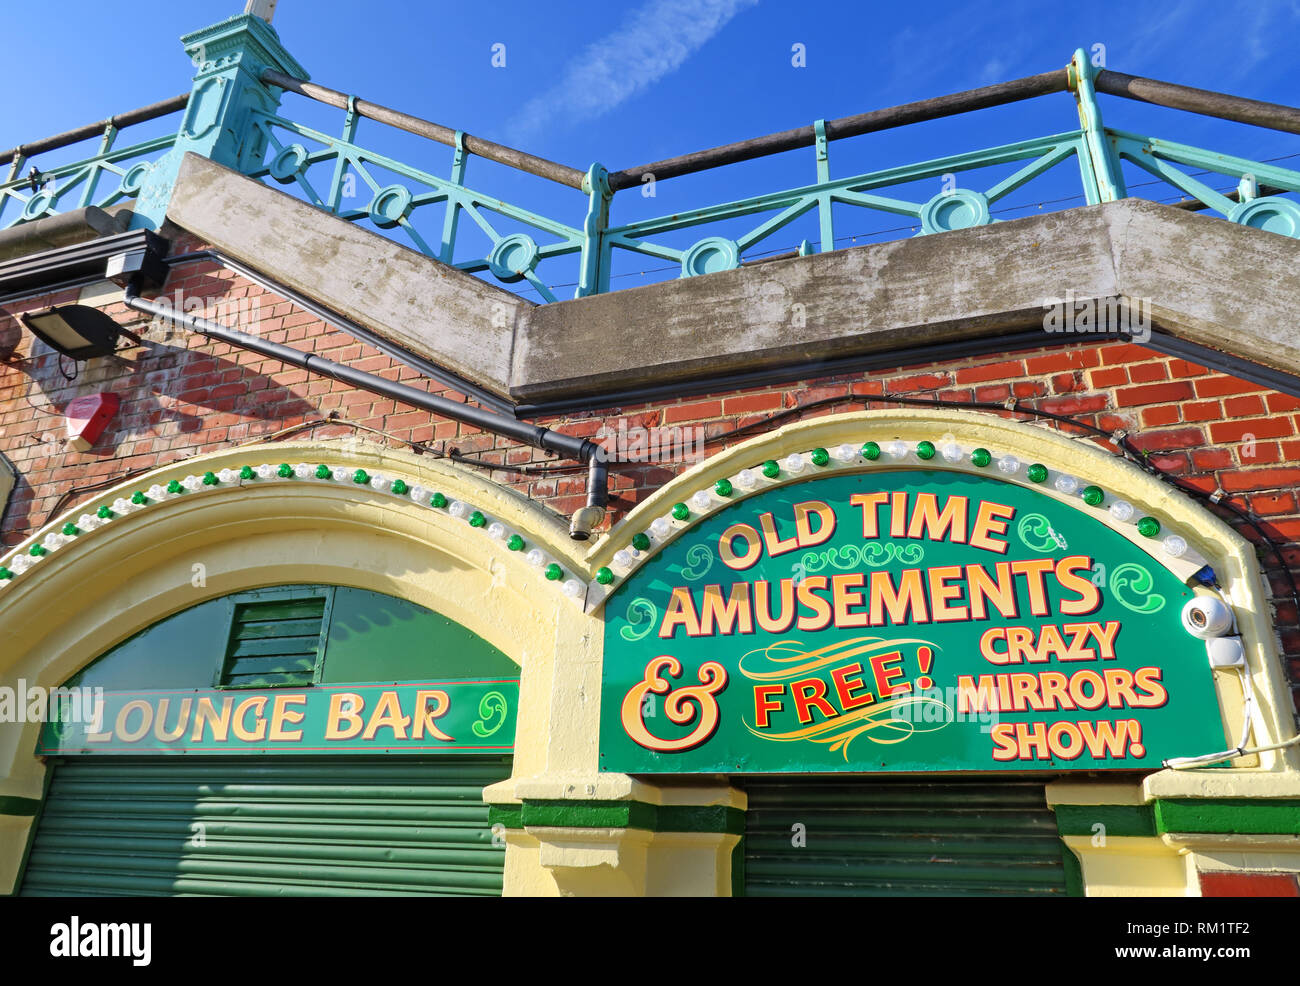 Lounge Bar, Old Time amusements, Free Crazy Mirrors Show, Kings Road Arches, Beachfront, Brighton, East Sussex,South East England, UK - Stock Image